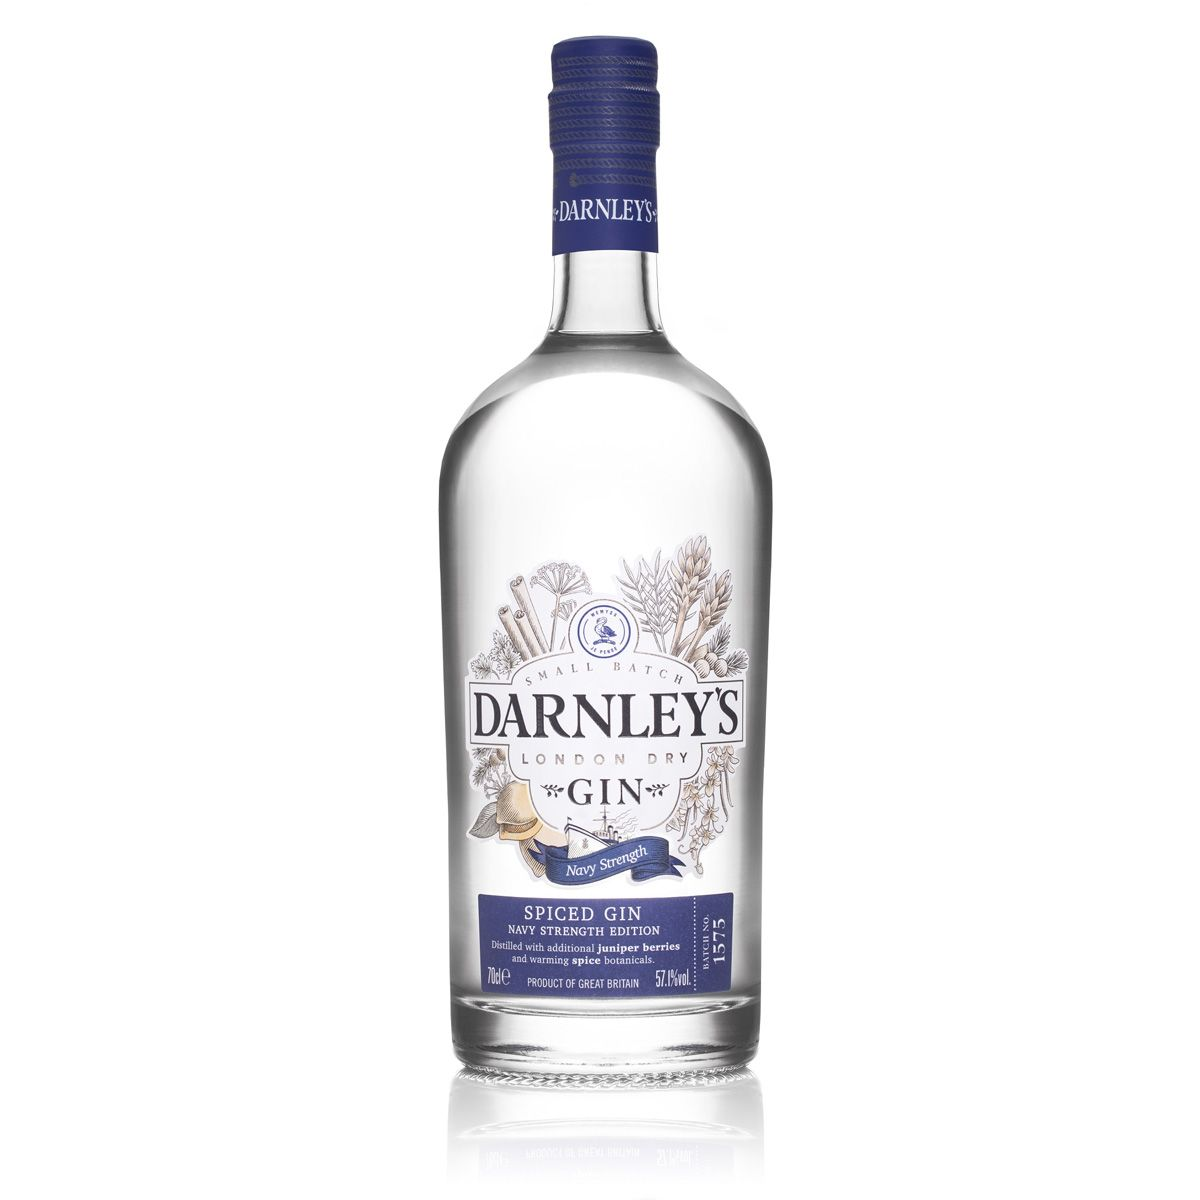 Darnley's Spiced Navy Strength Gin Gins & Gin Liqueurs